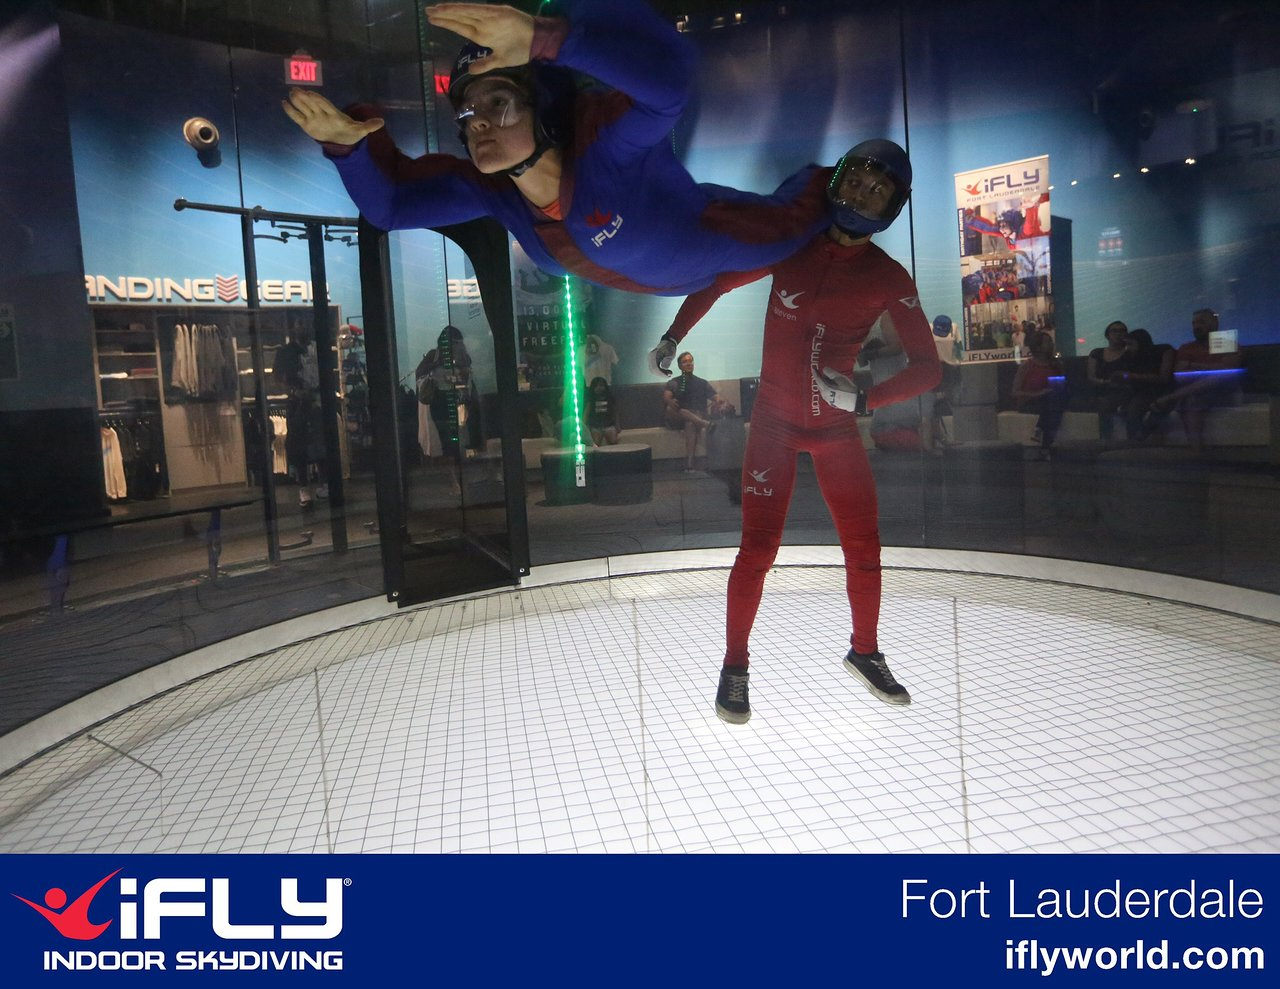 Ifly Indoor Skydiving Fort Lauderdale